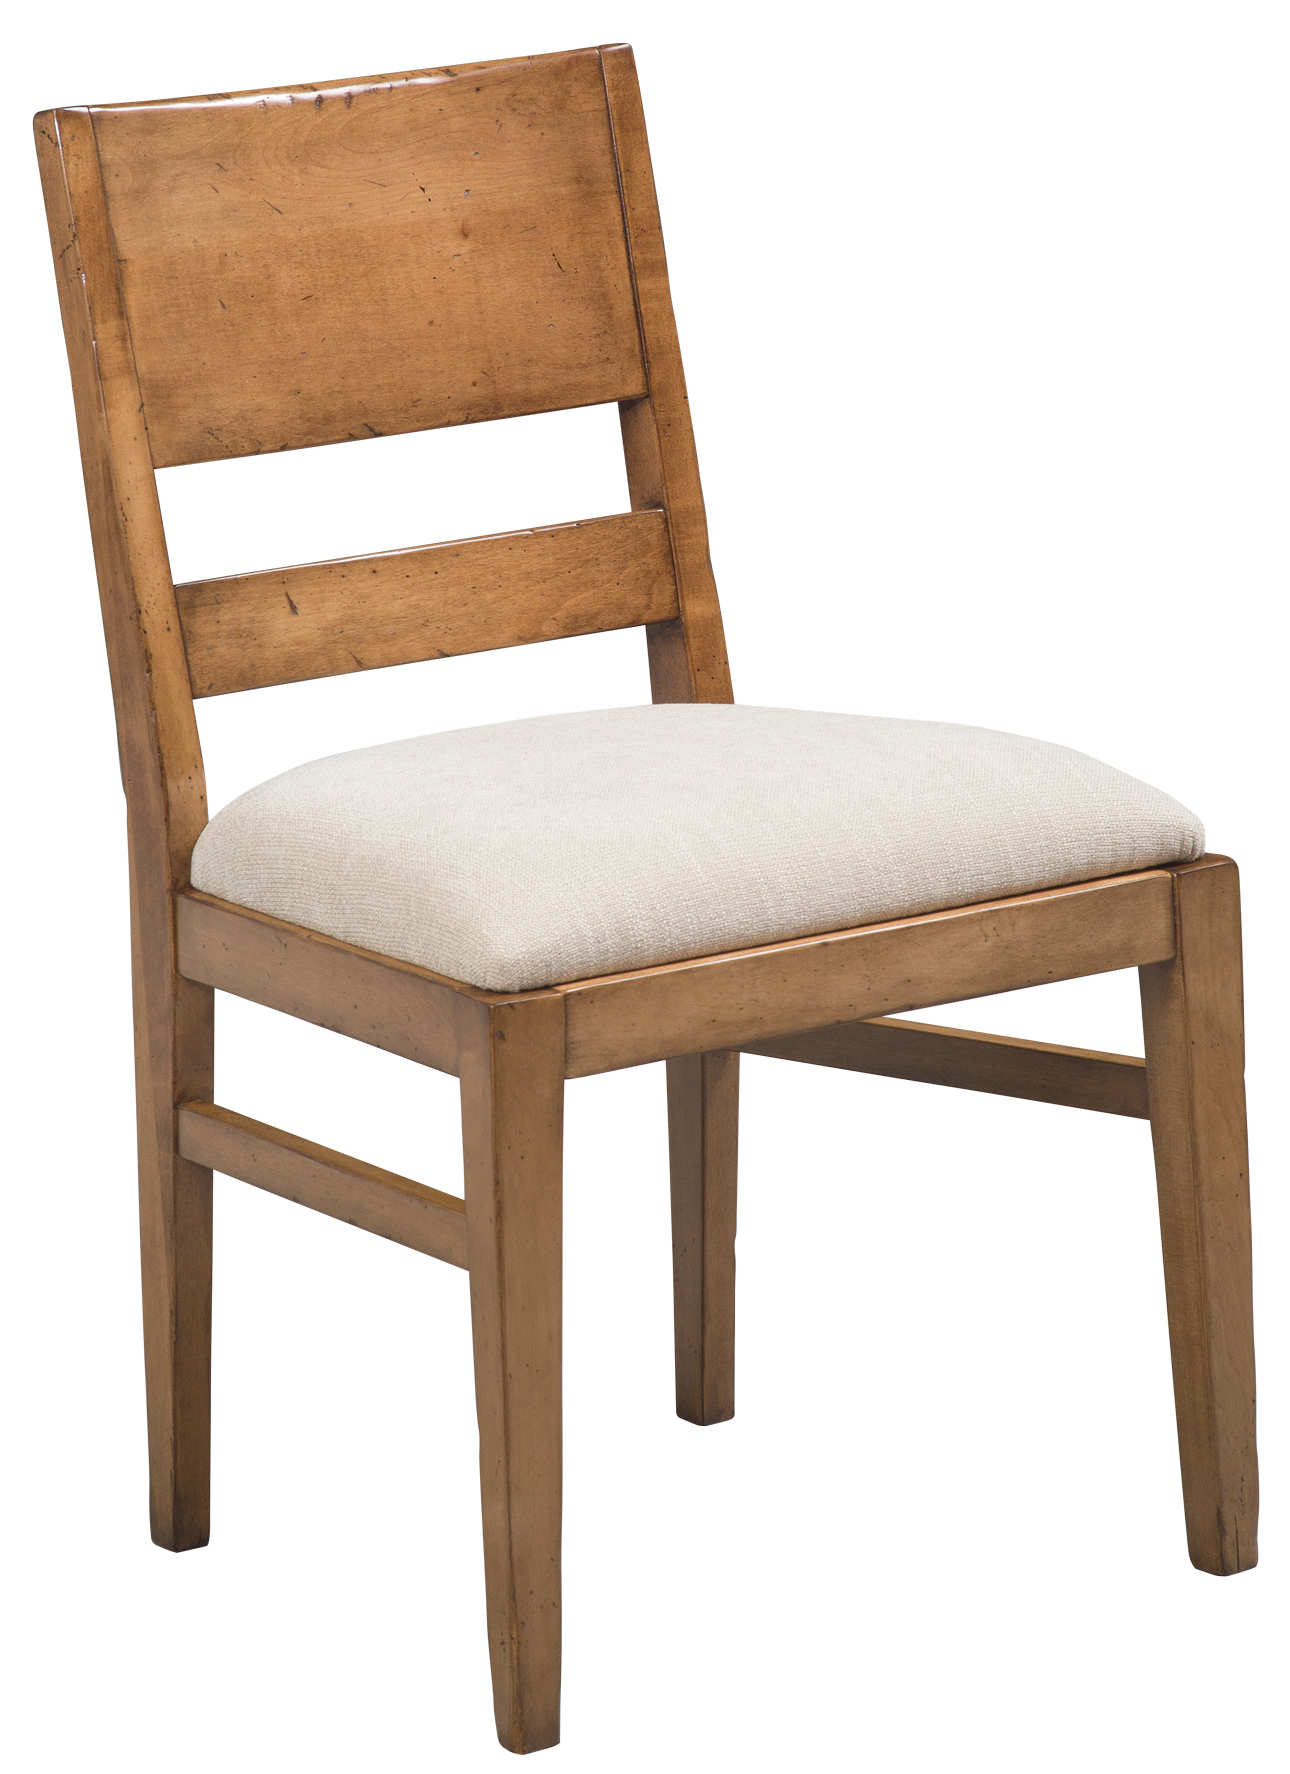 Bakersfield Chair Image